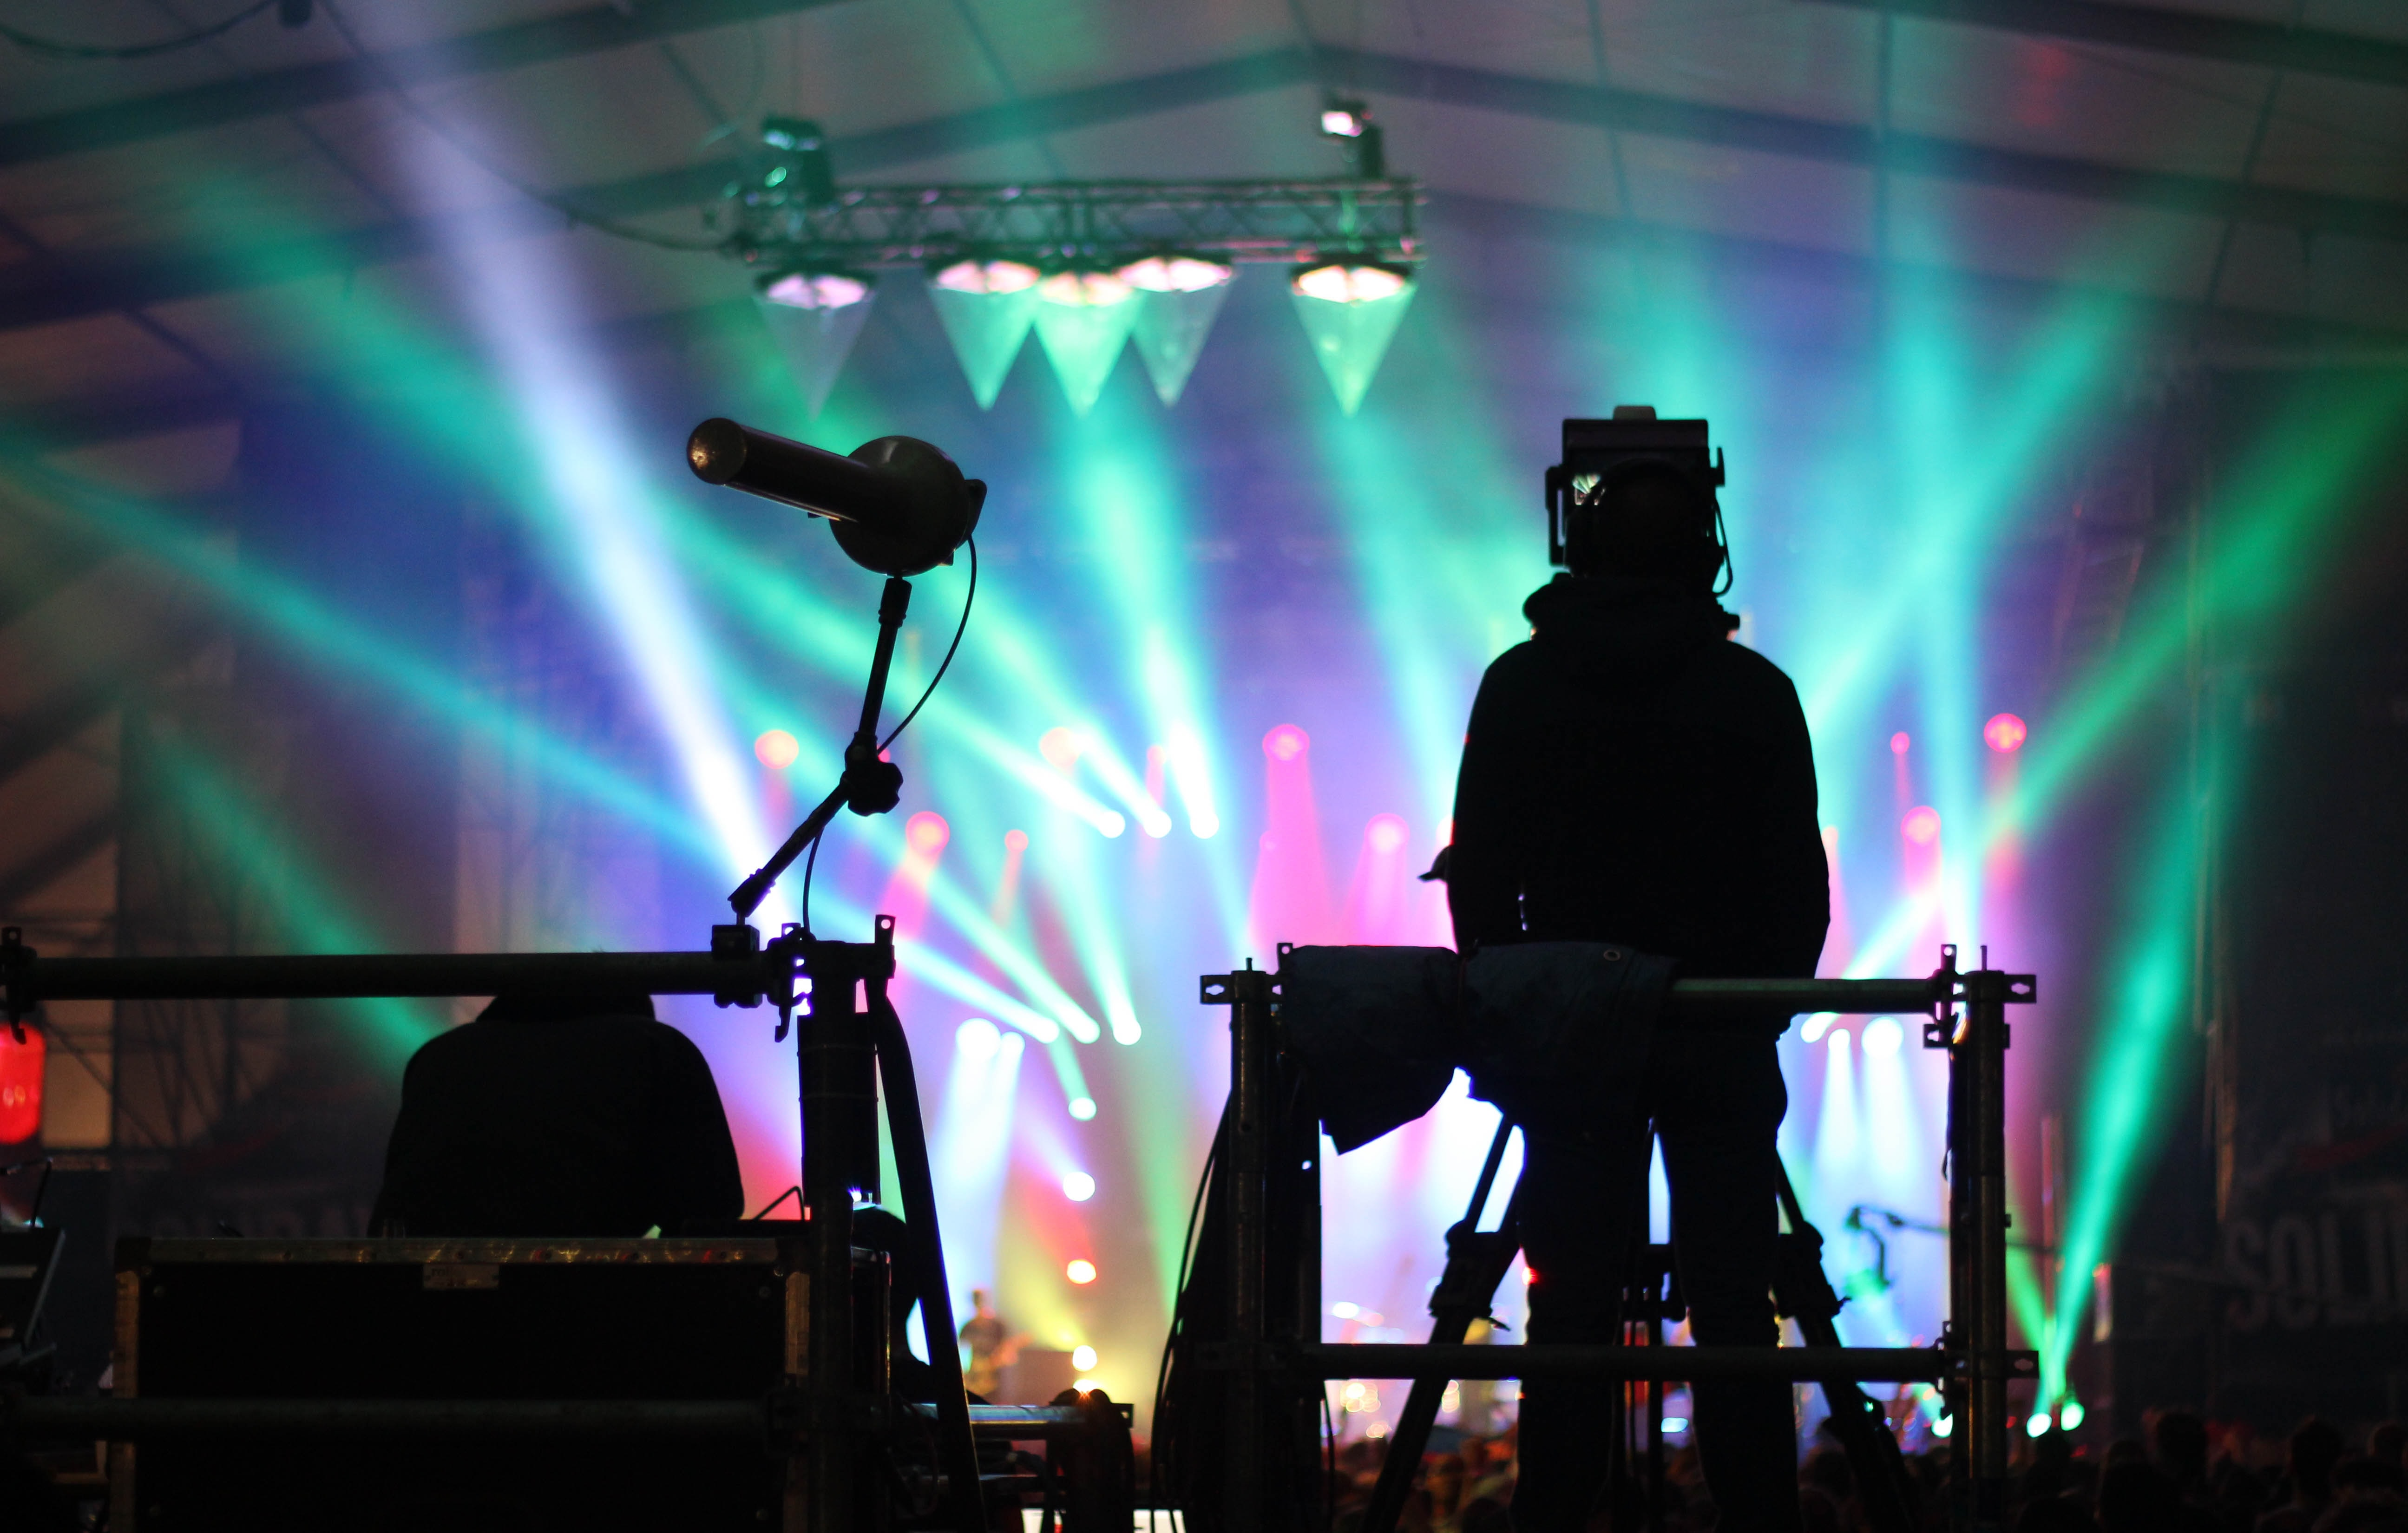 A silhouette of a technician at the back of a concert venue against colorful spotlights on the stage